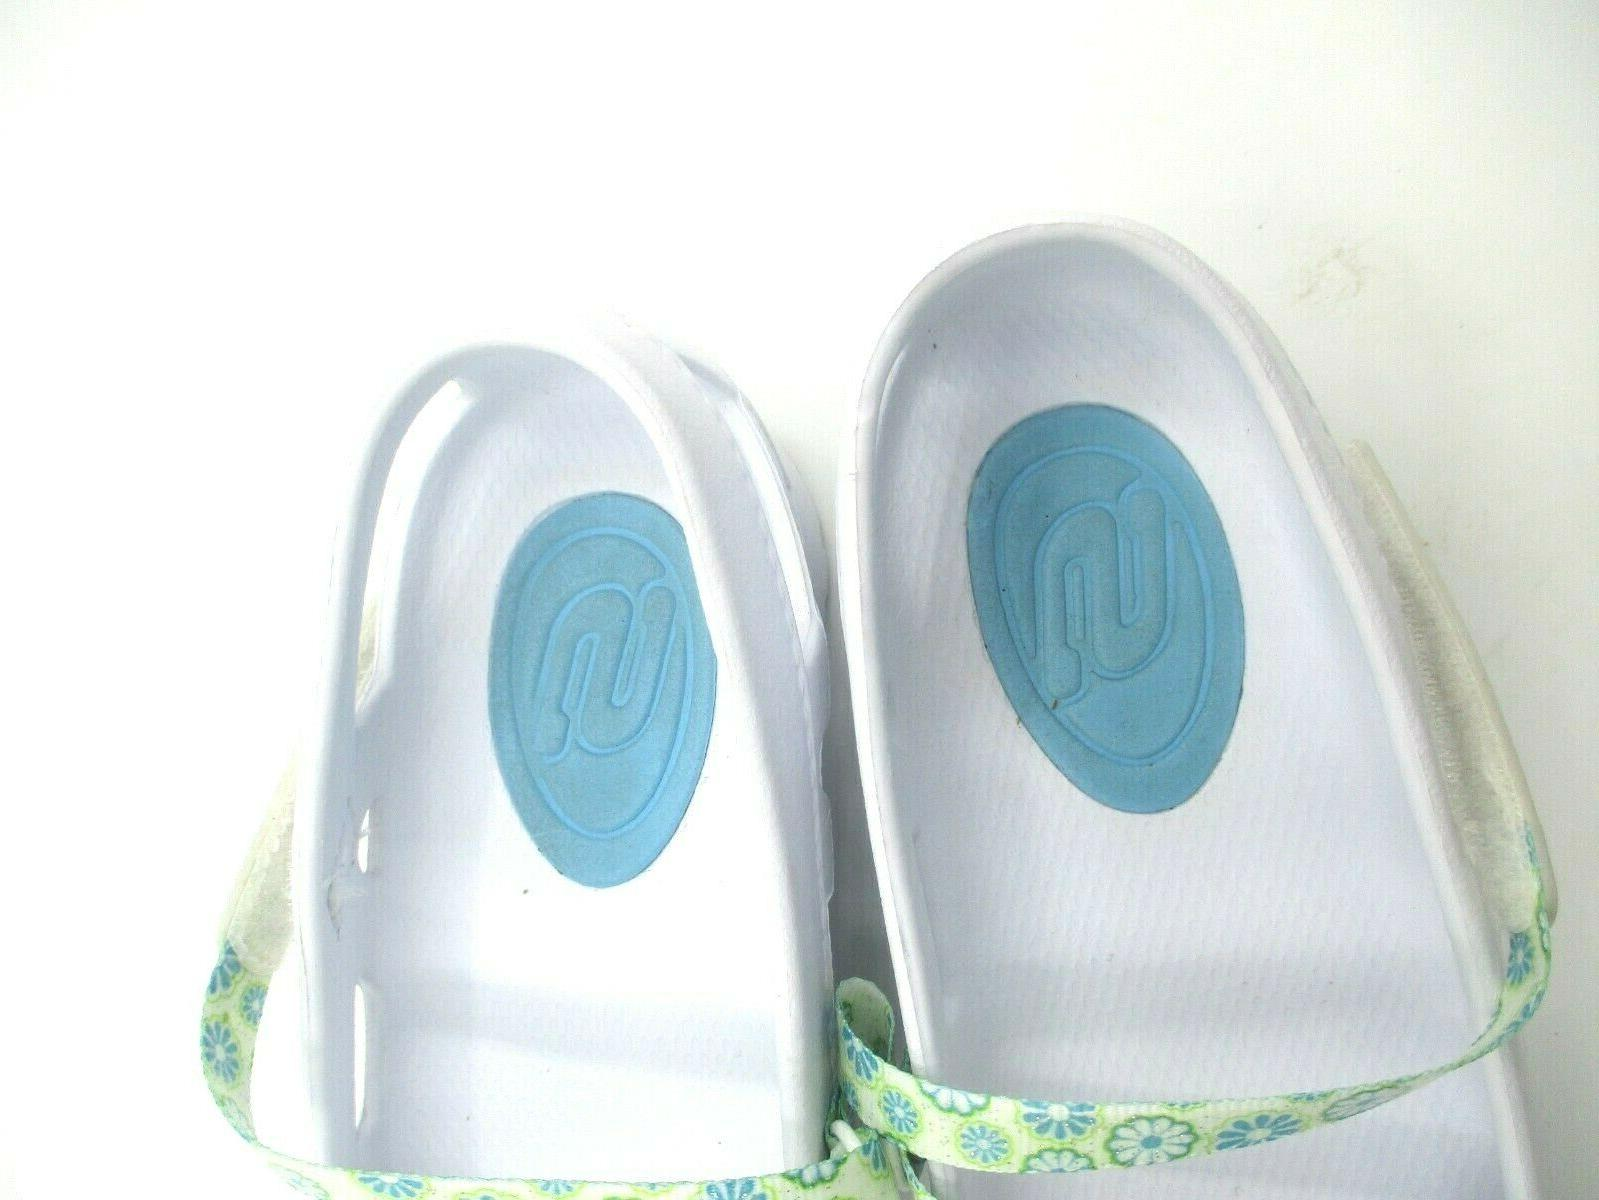 Skechers Washable Water Shoes Strap